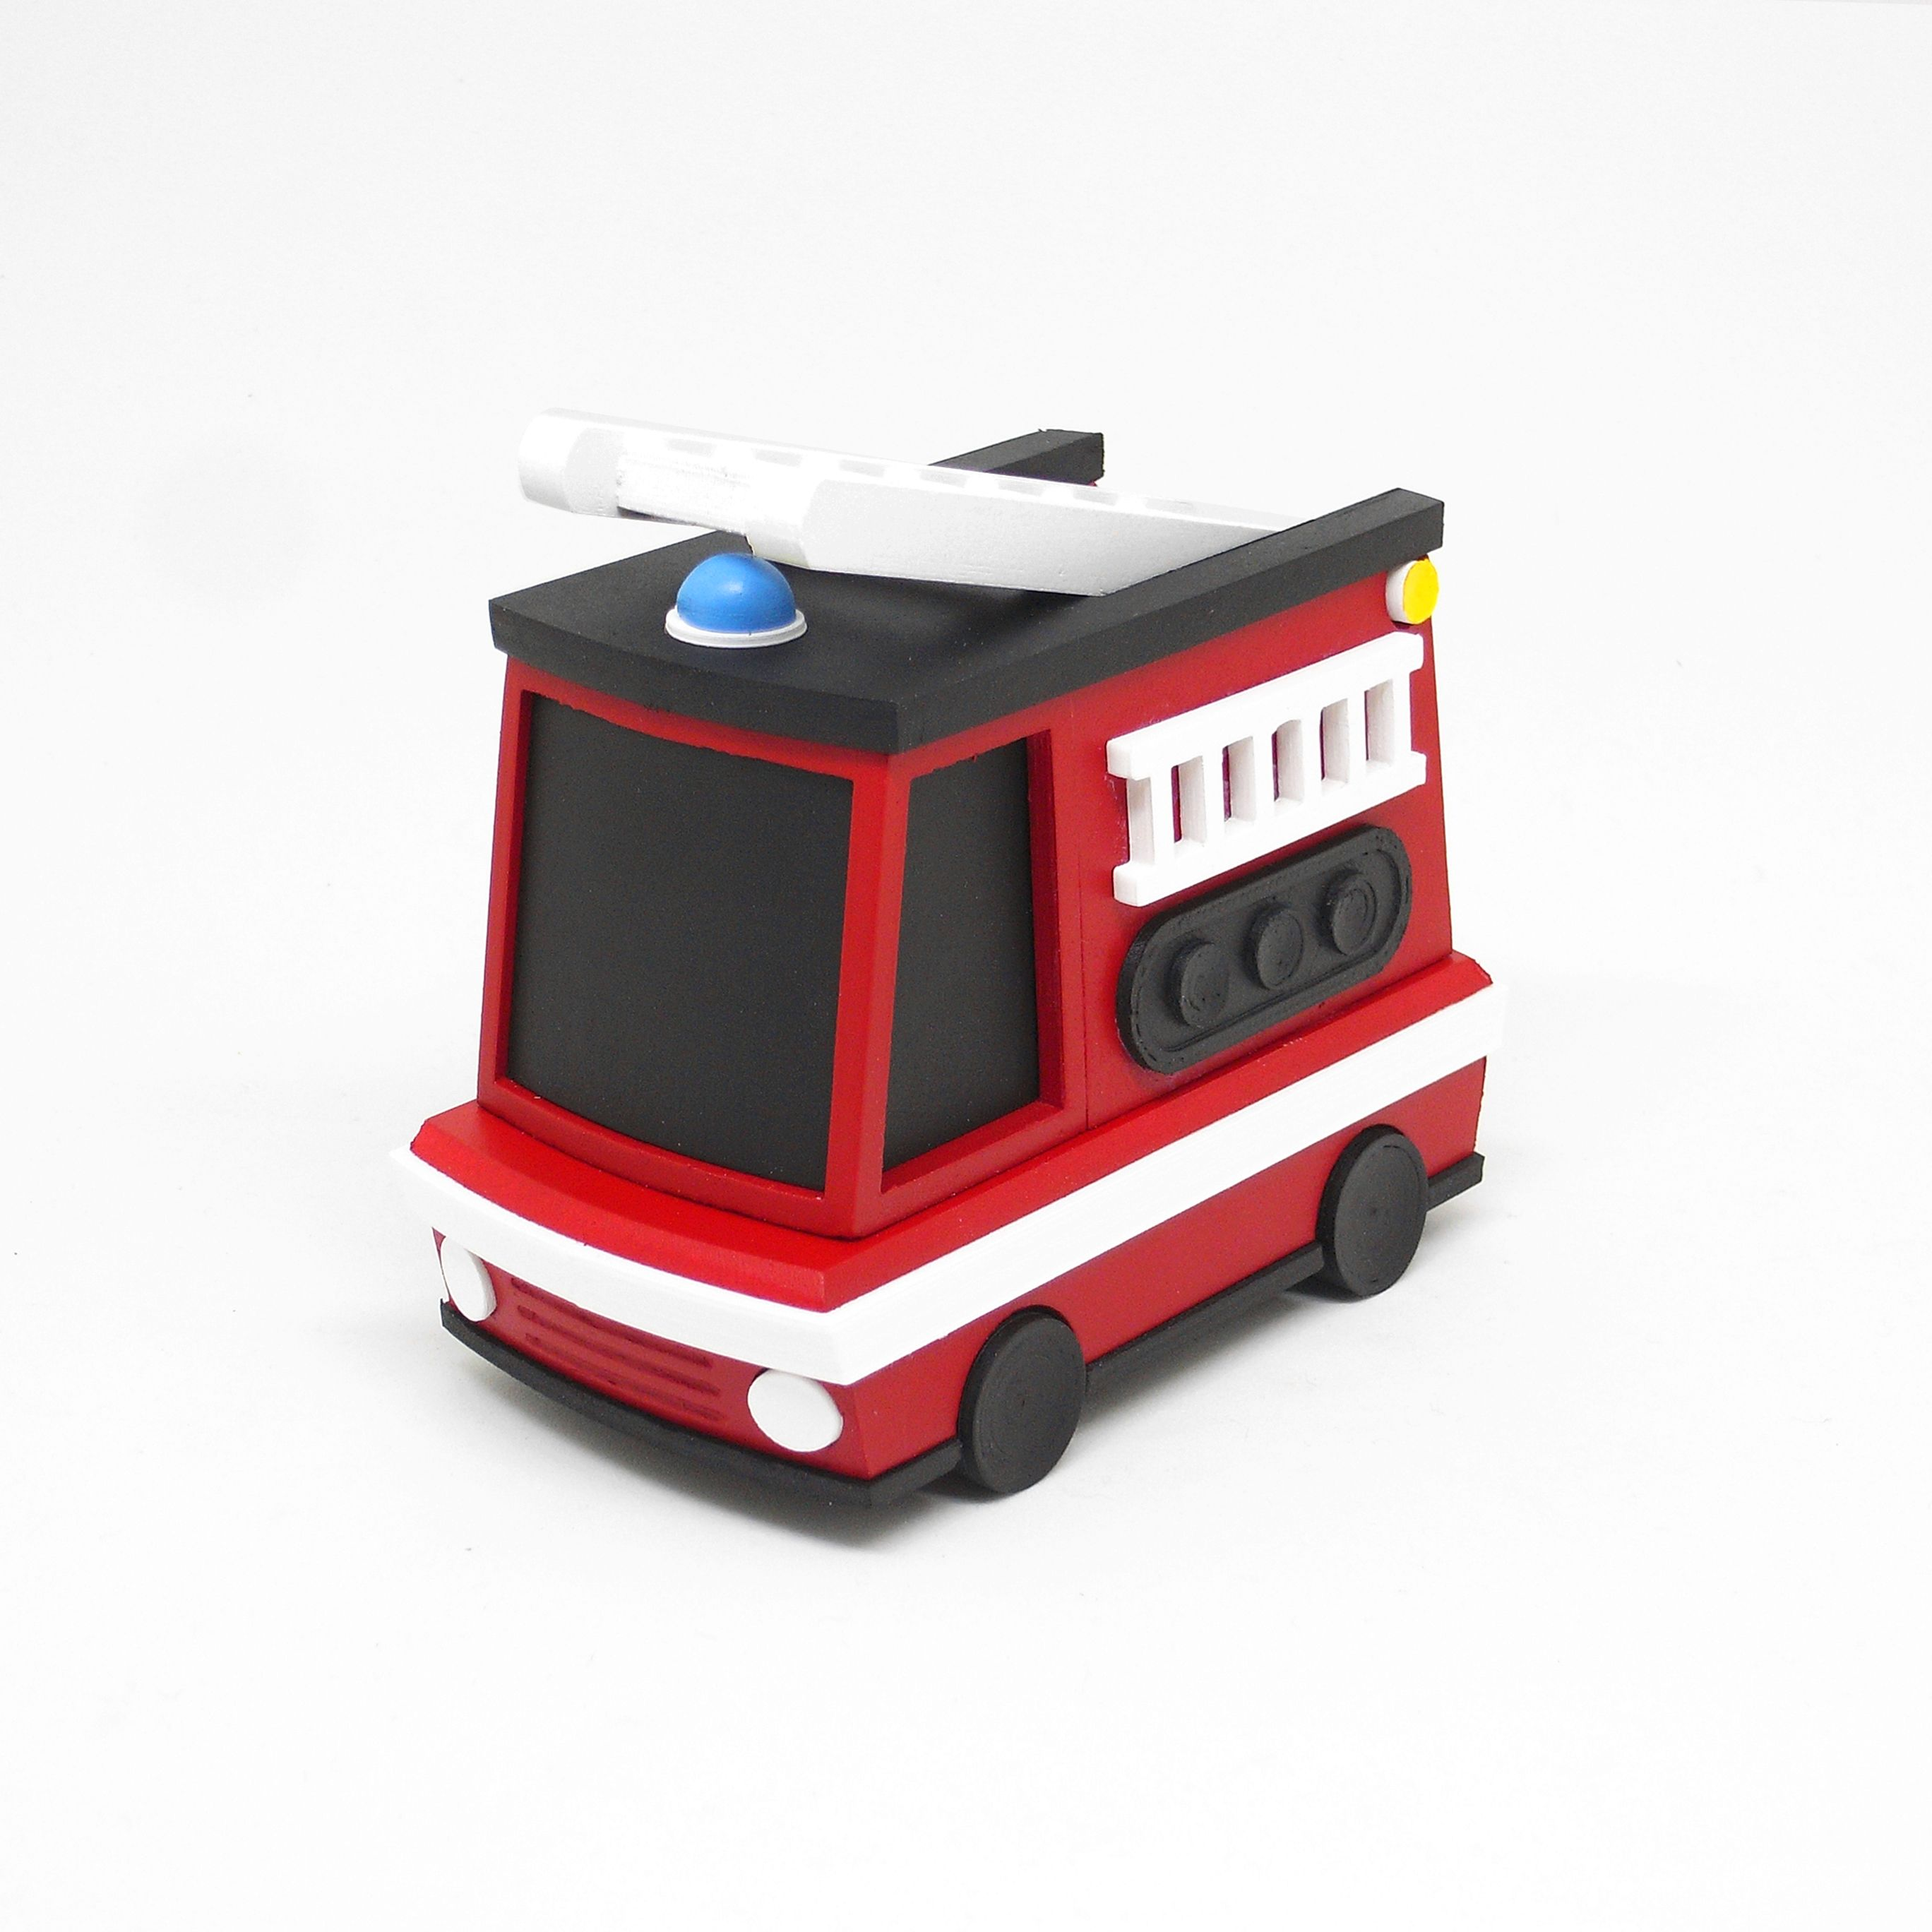 Fire Engine (3D printing) #designinhongkong #makeitworkstudio #sketch #fireengine #toy #onlyforkids #3dprinting